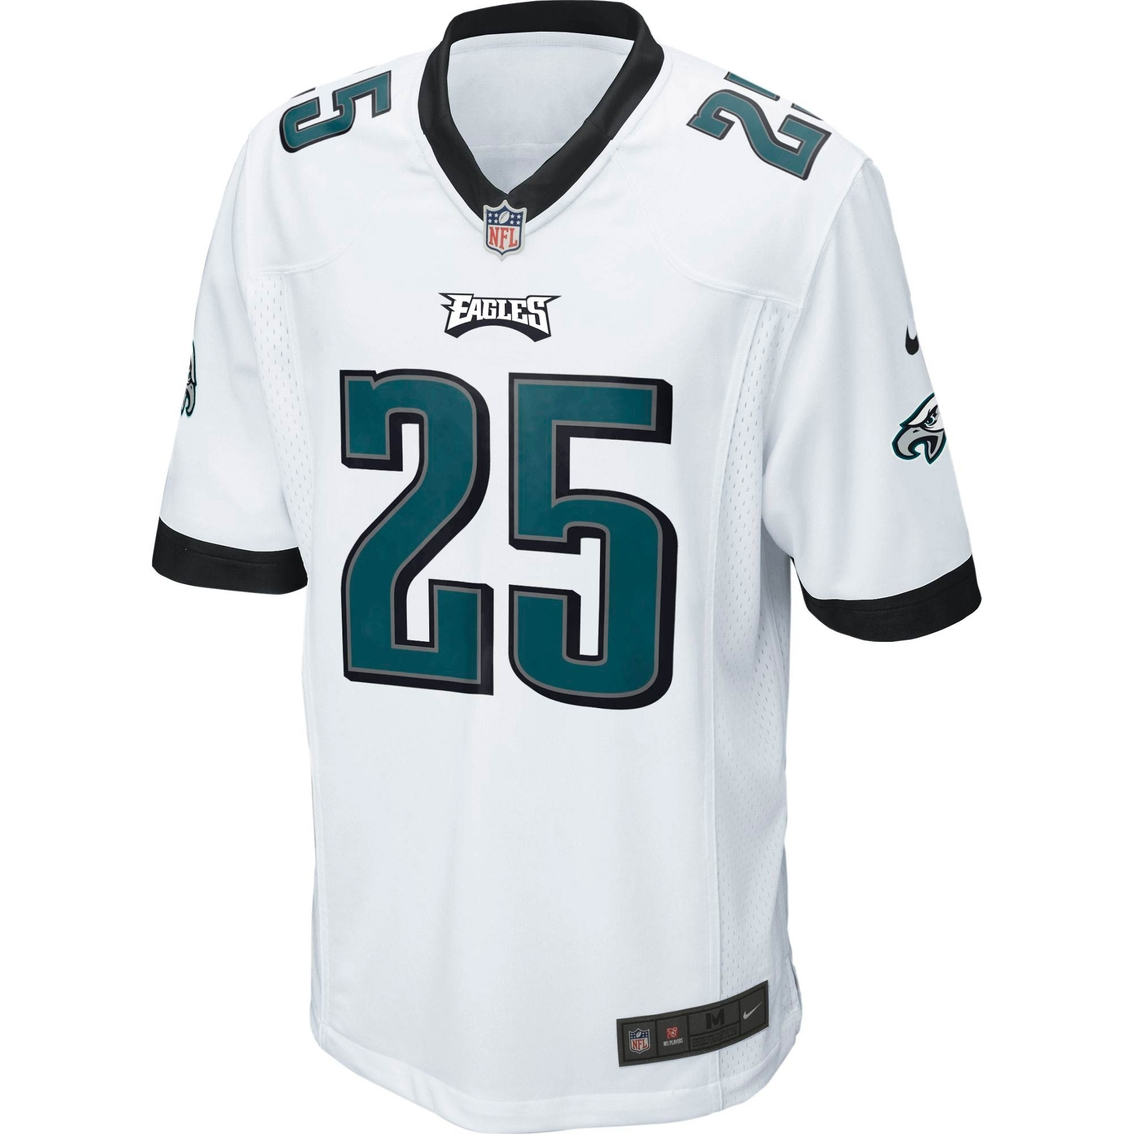 Nike nfl philadelphia eagles leshean mccoy jersey for Furniture xchange new jersey